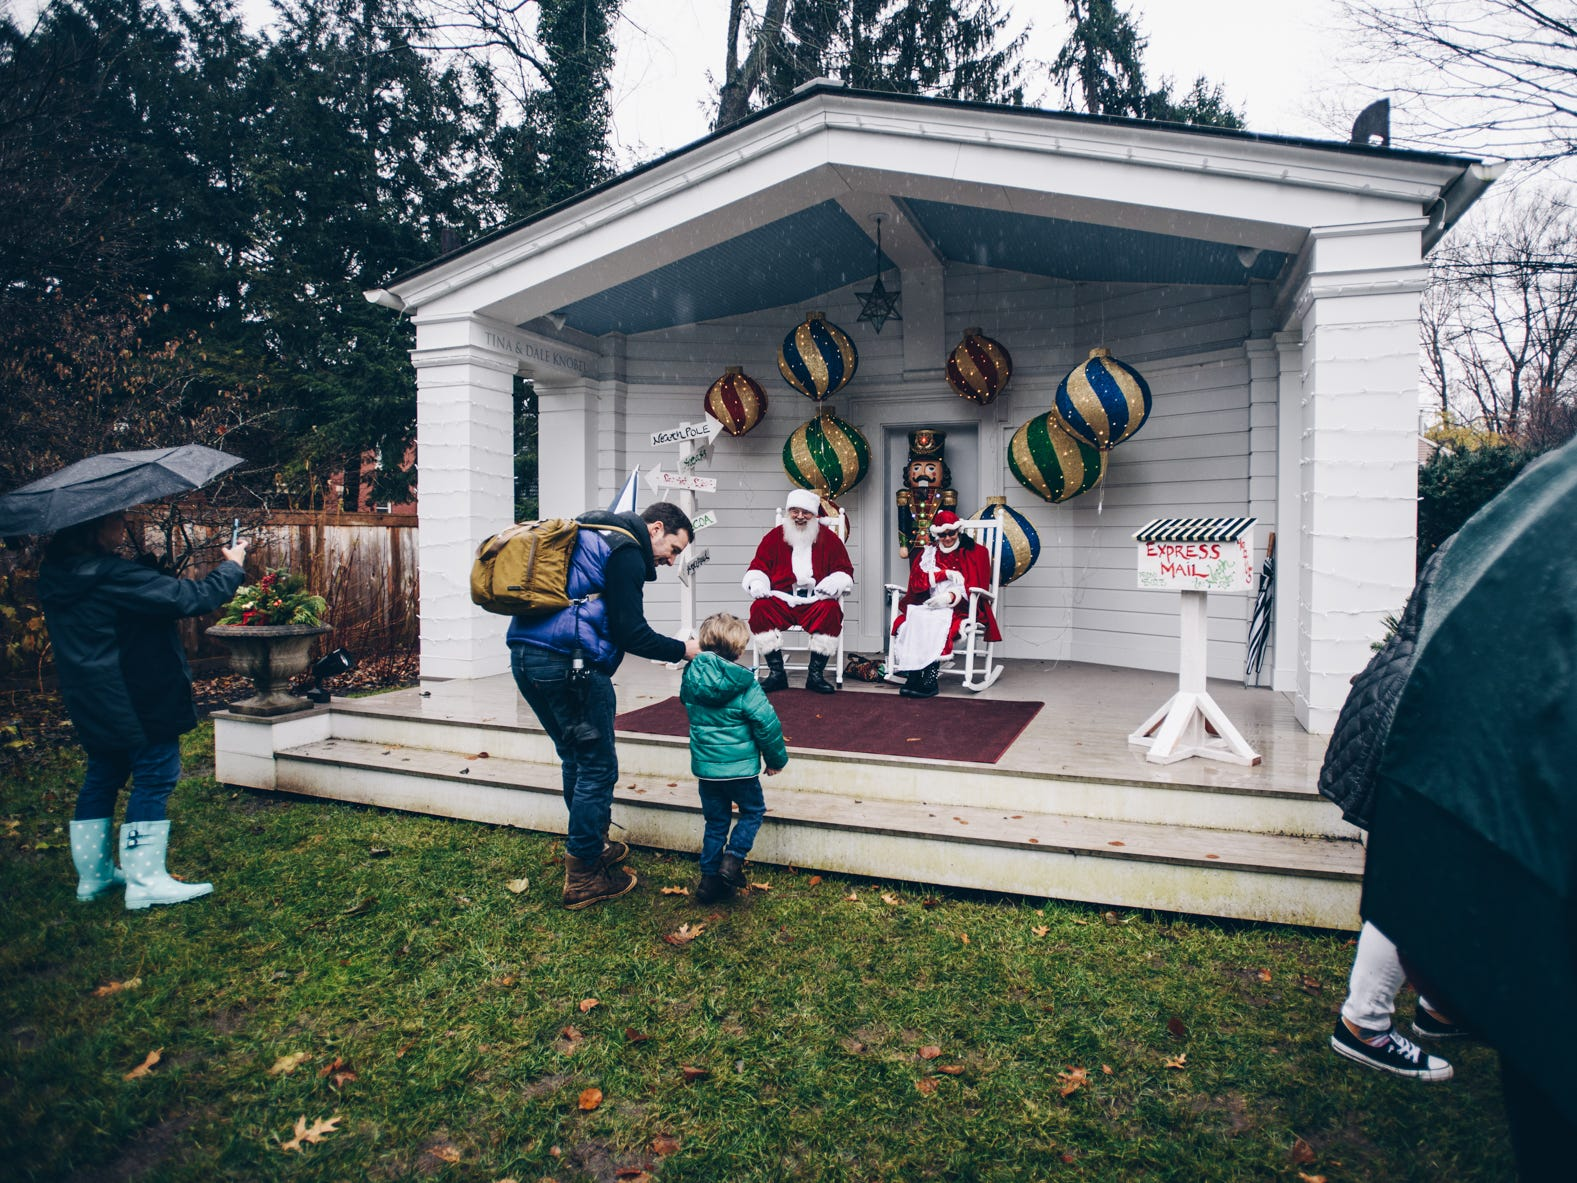 Kids and parents enjoy their opportunity to see Santa despite persistent rain during Saturday's Christmas Candlelight Walking Tour.